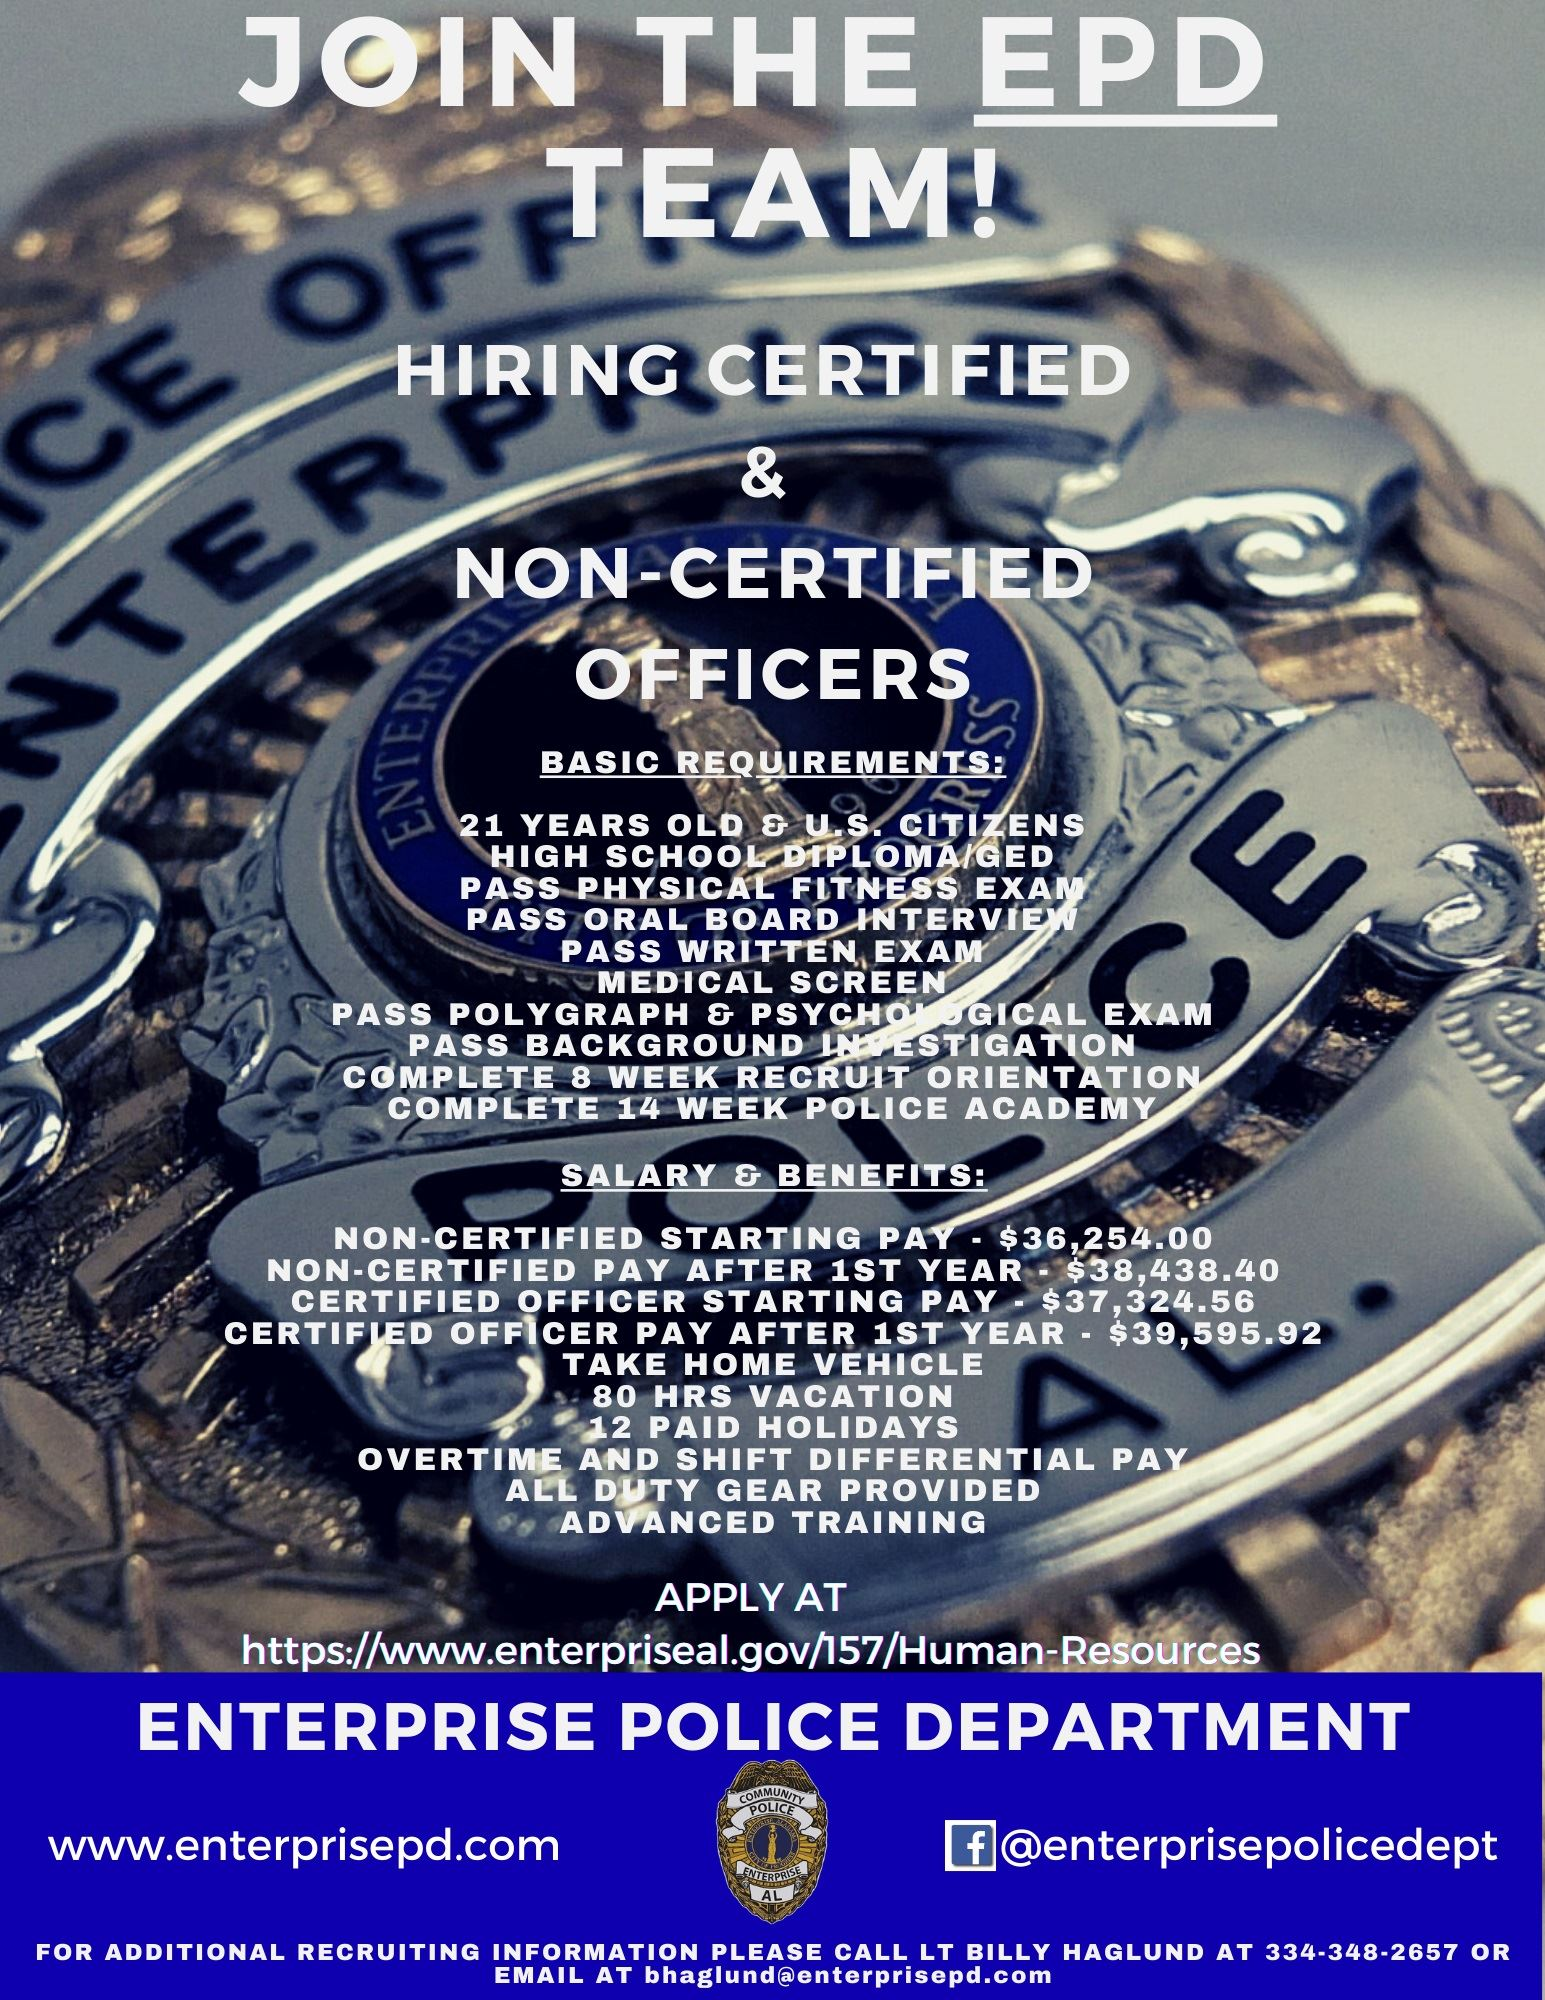 police job flyer 6.0 fb